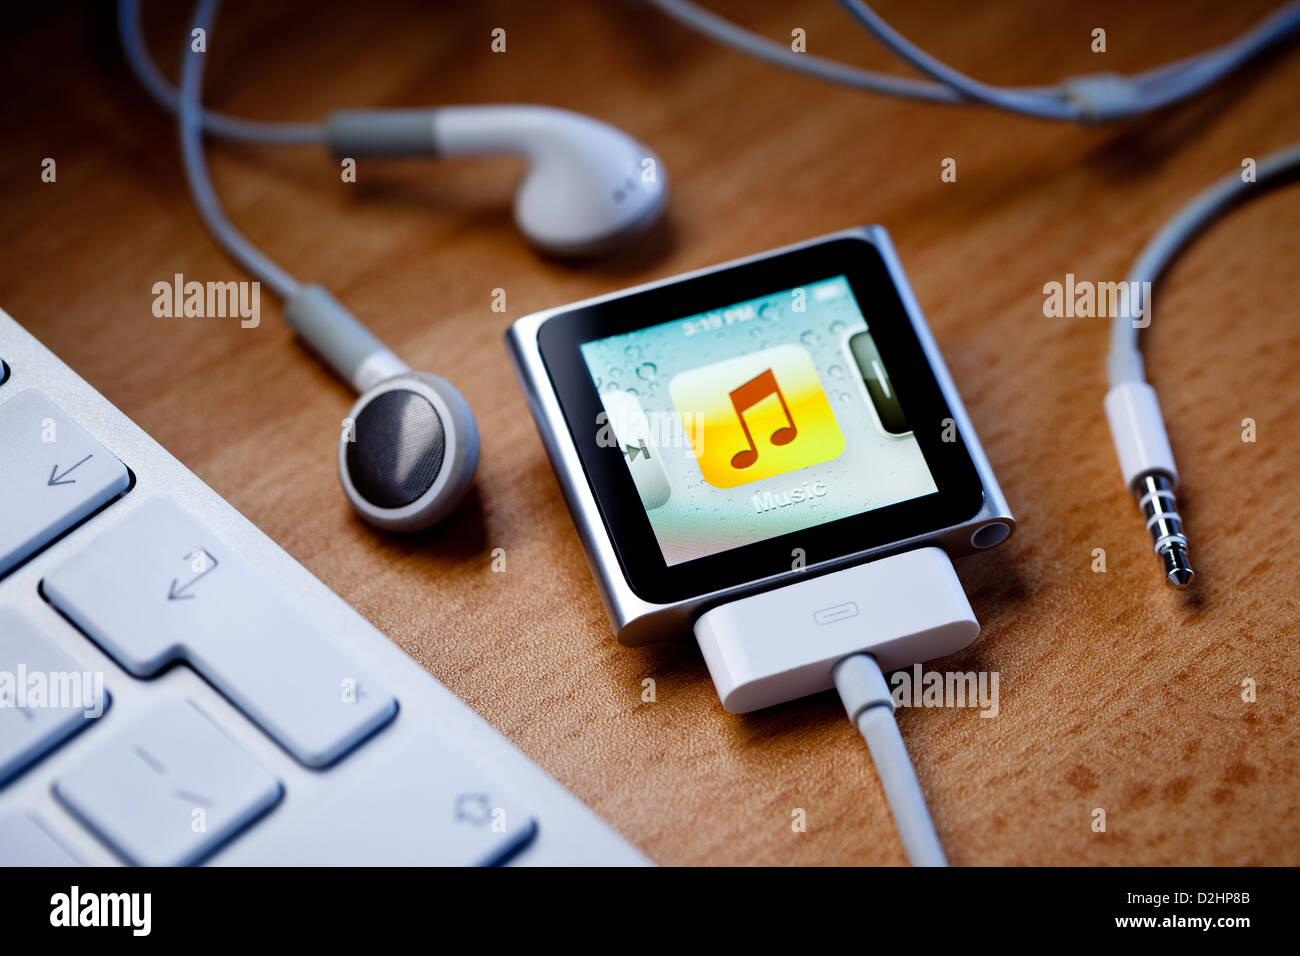 hight resolution of ipod nano with a cable attached sits on a desk next to apple earbud headphones and a computer keyboard